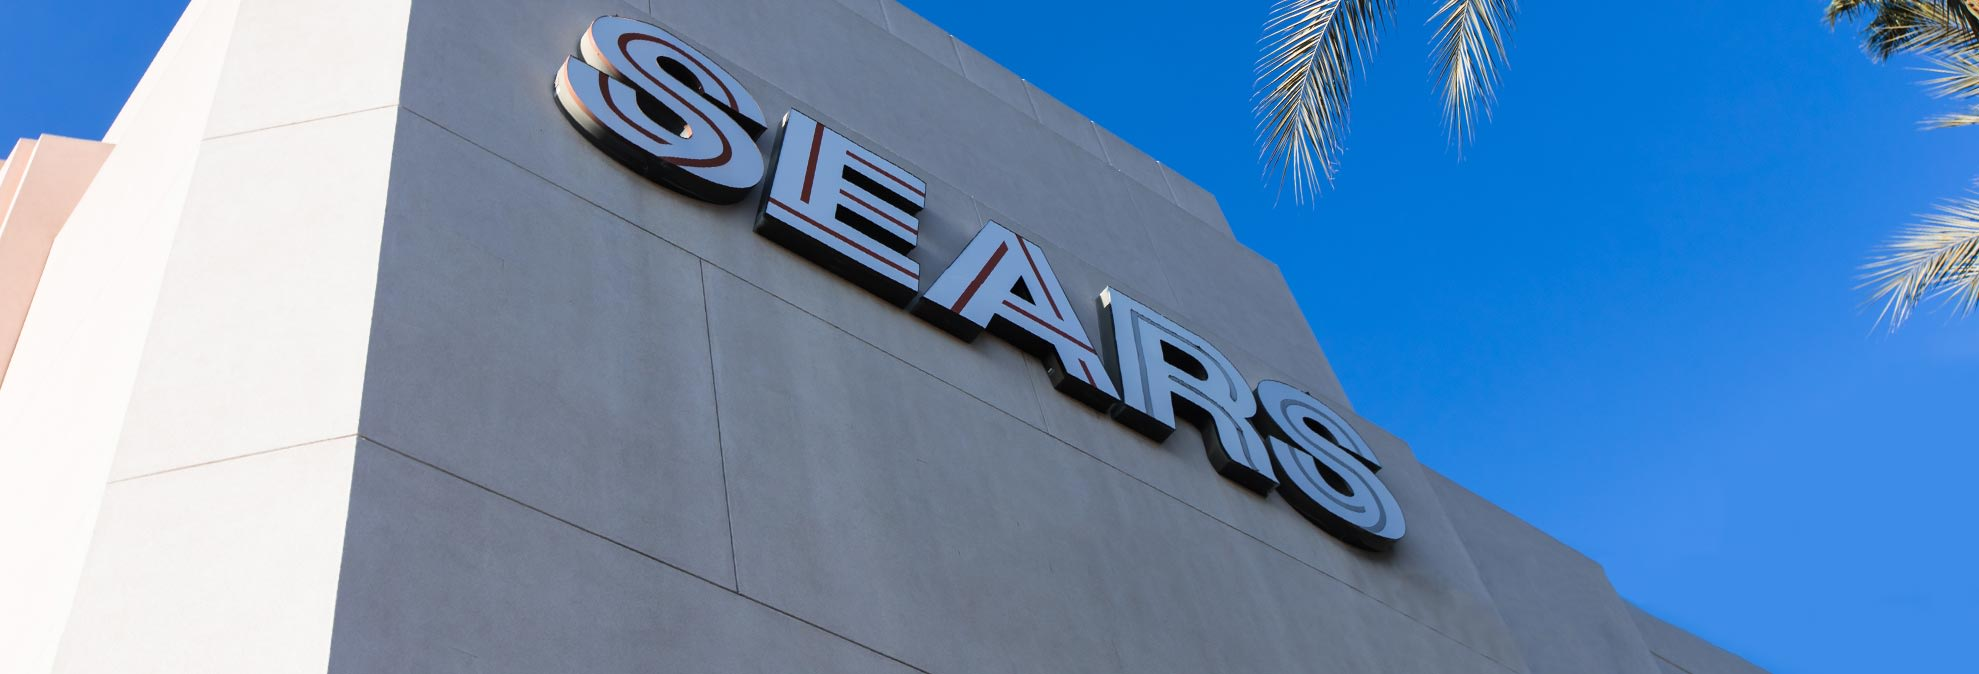 What Sears-Whirlpool Split Really Means for Consumers - Consumer Reports